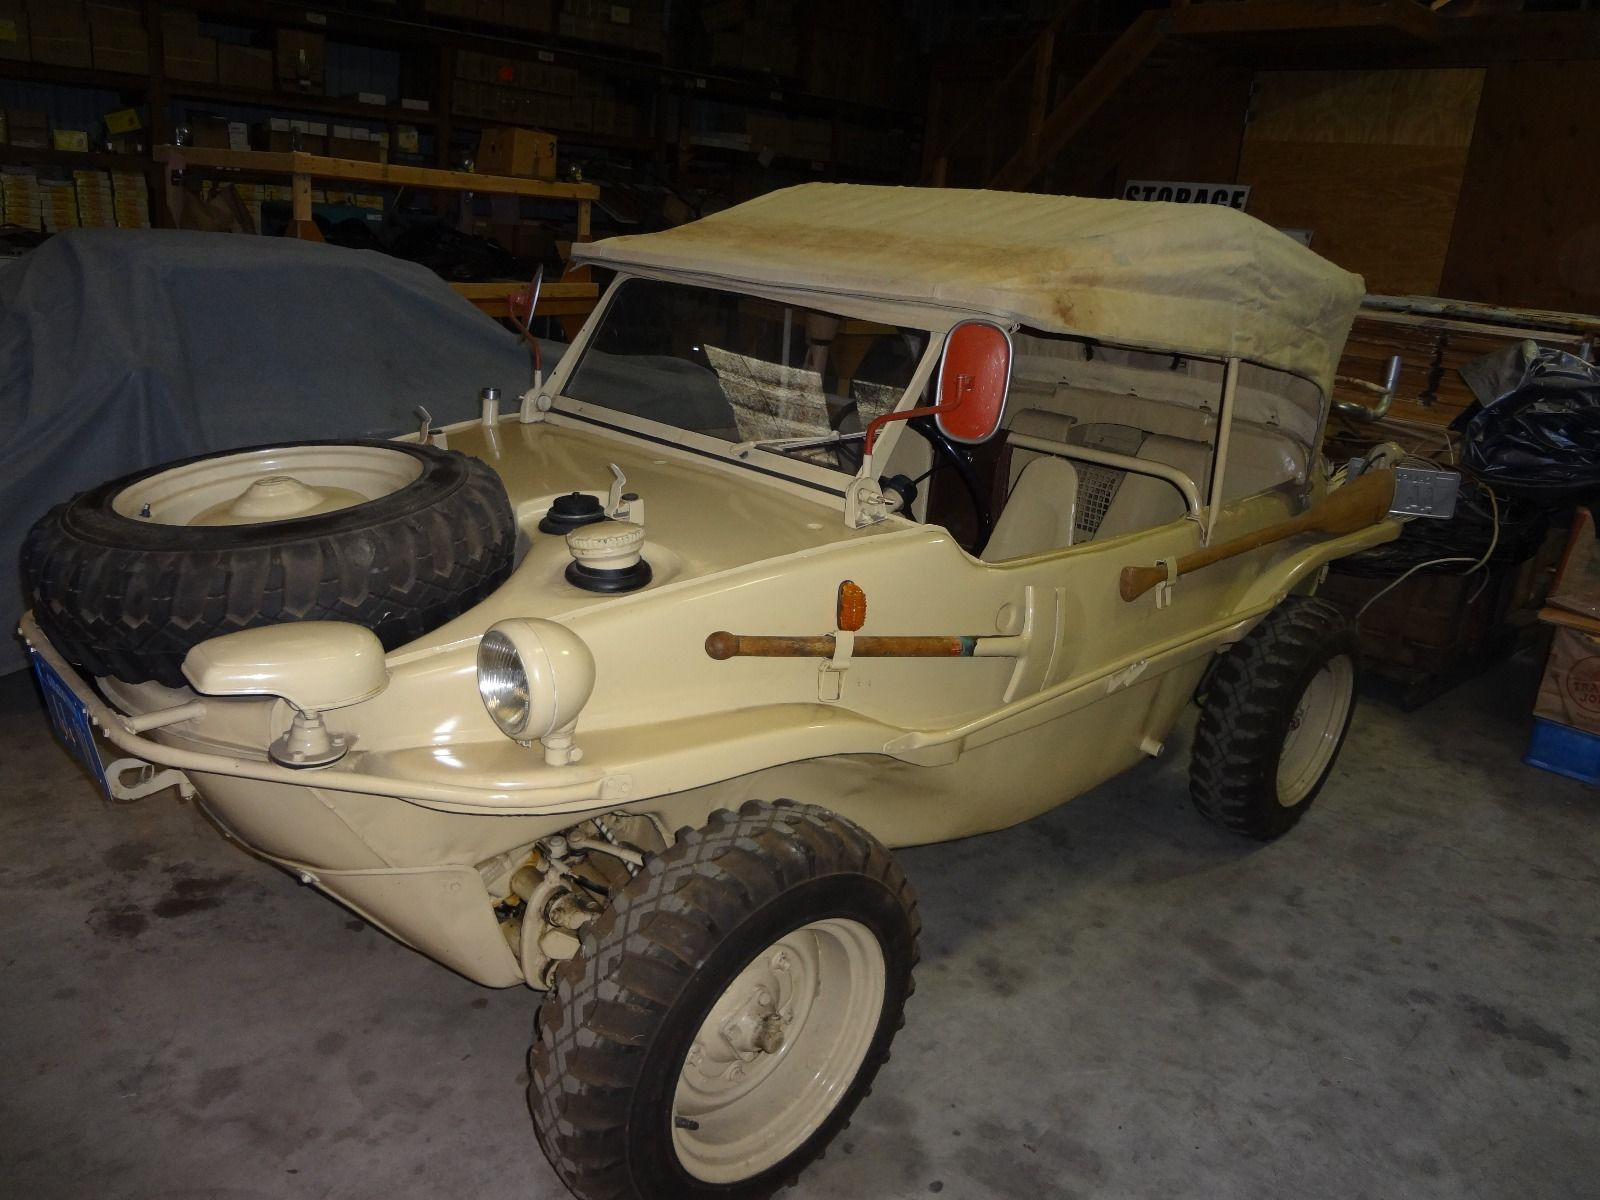 1944 Volkswagen Schwimmwagen Listed On Ebay For $180k ...